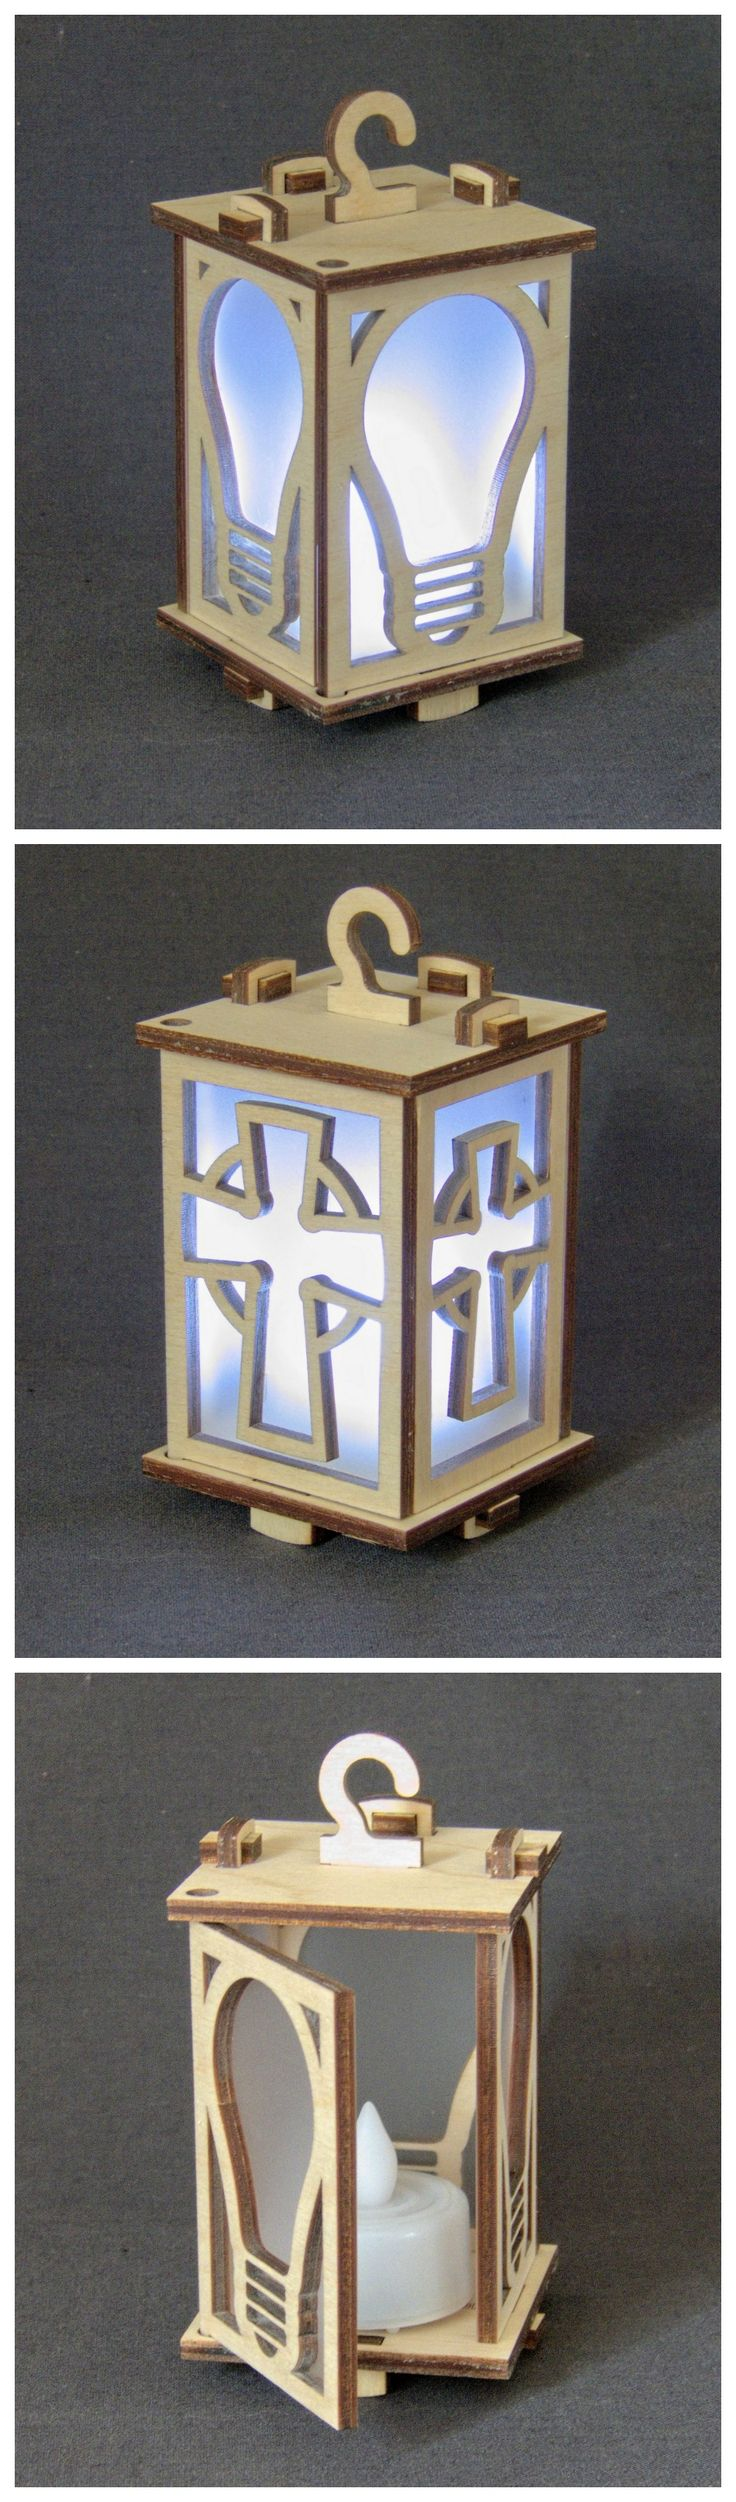 Two new lantern designs, available in a day or two.